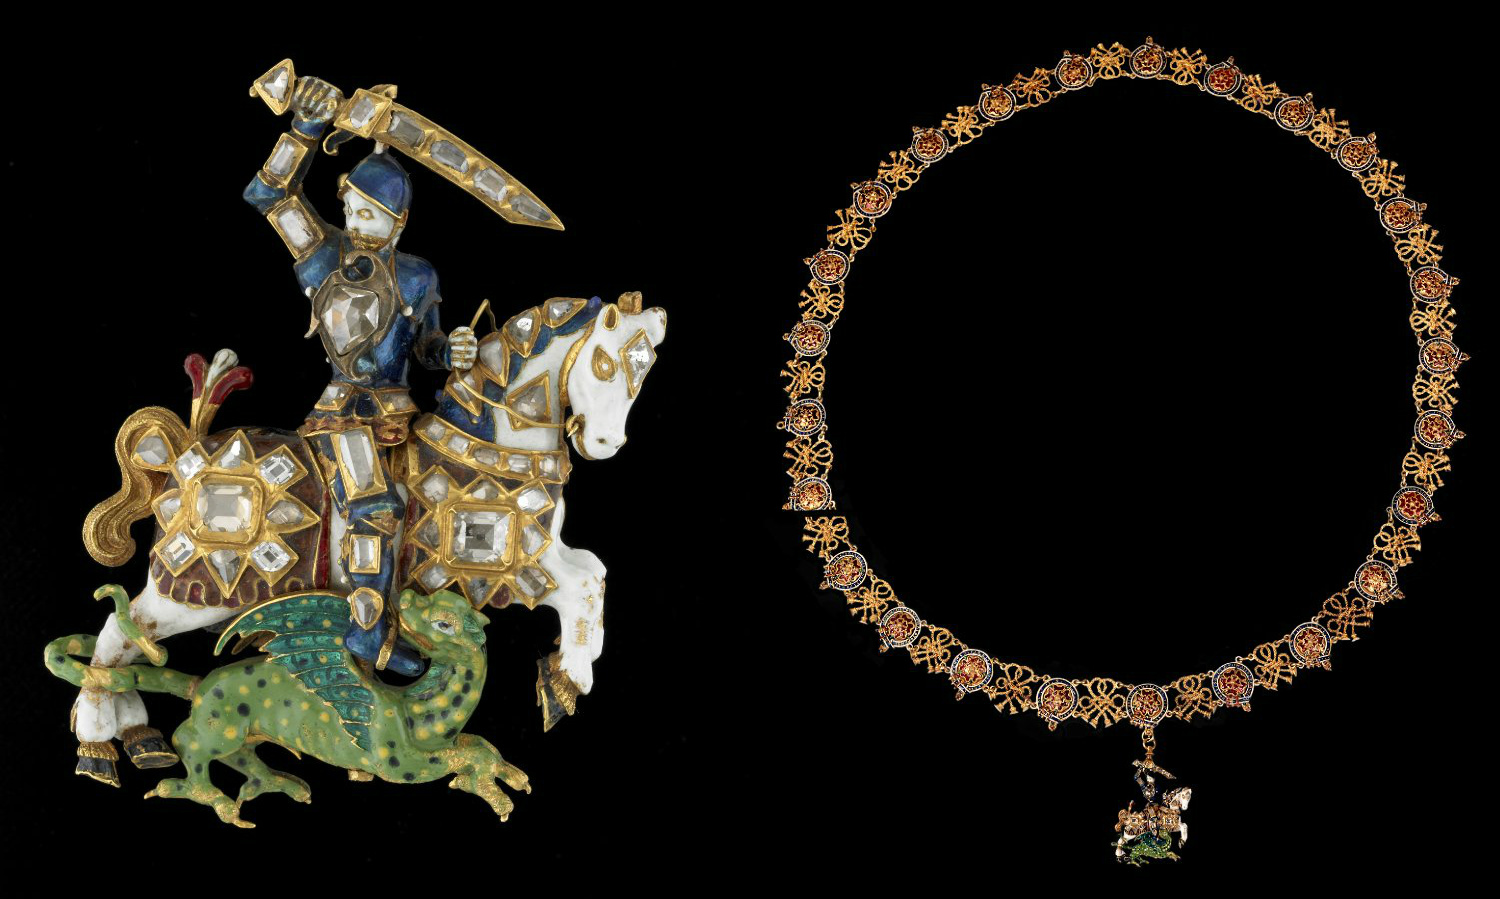 An Order of the Garter collar with Great George, 1628-9, England